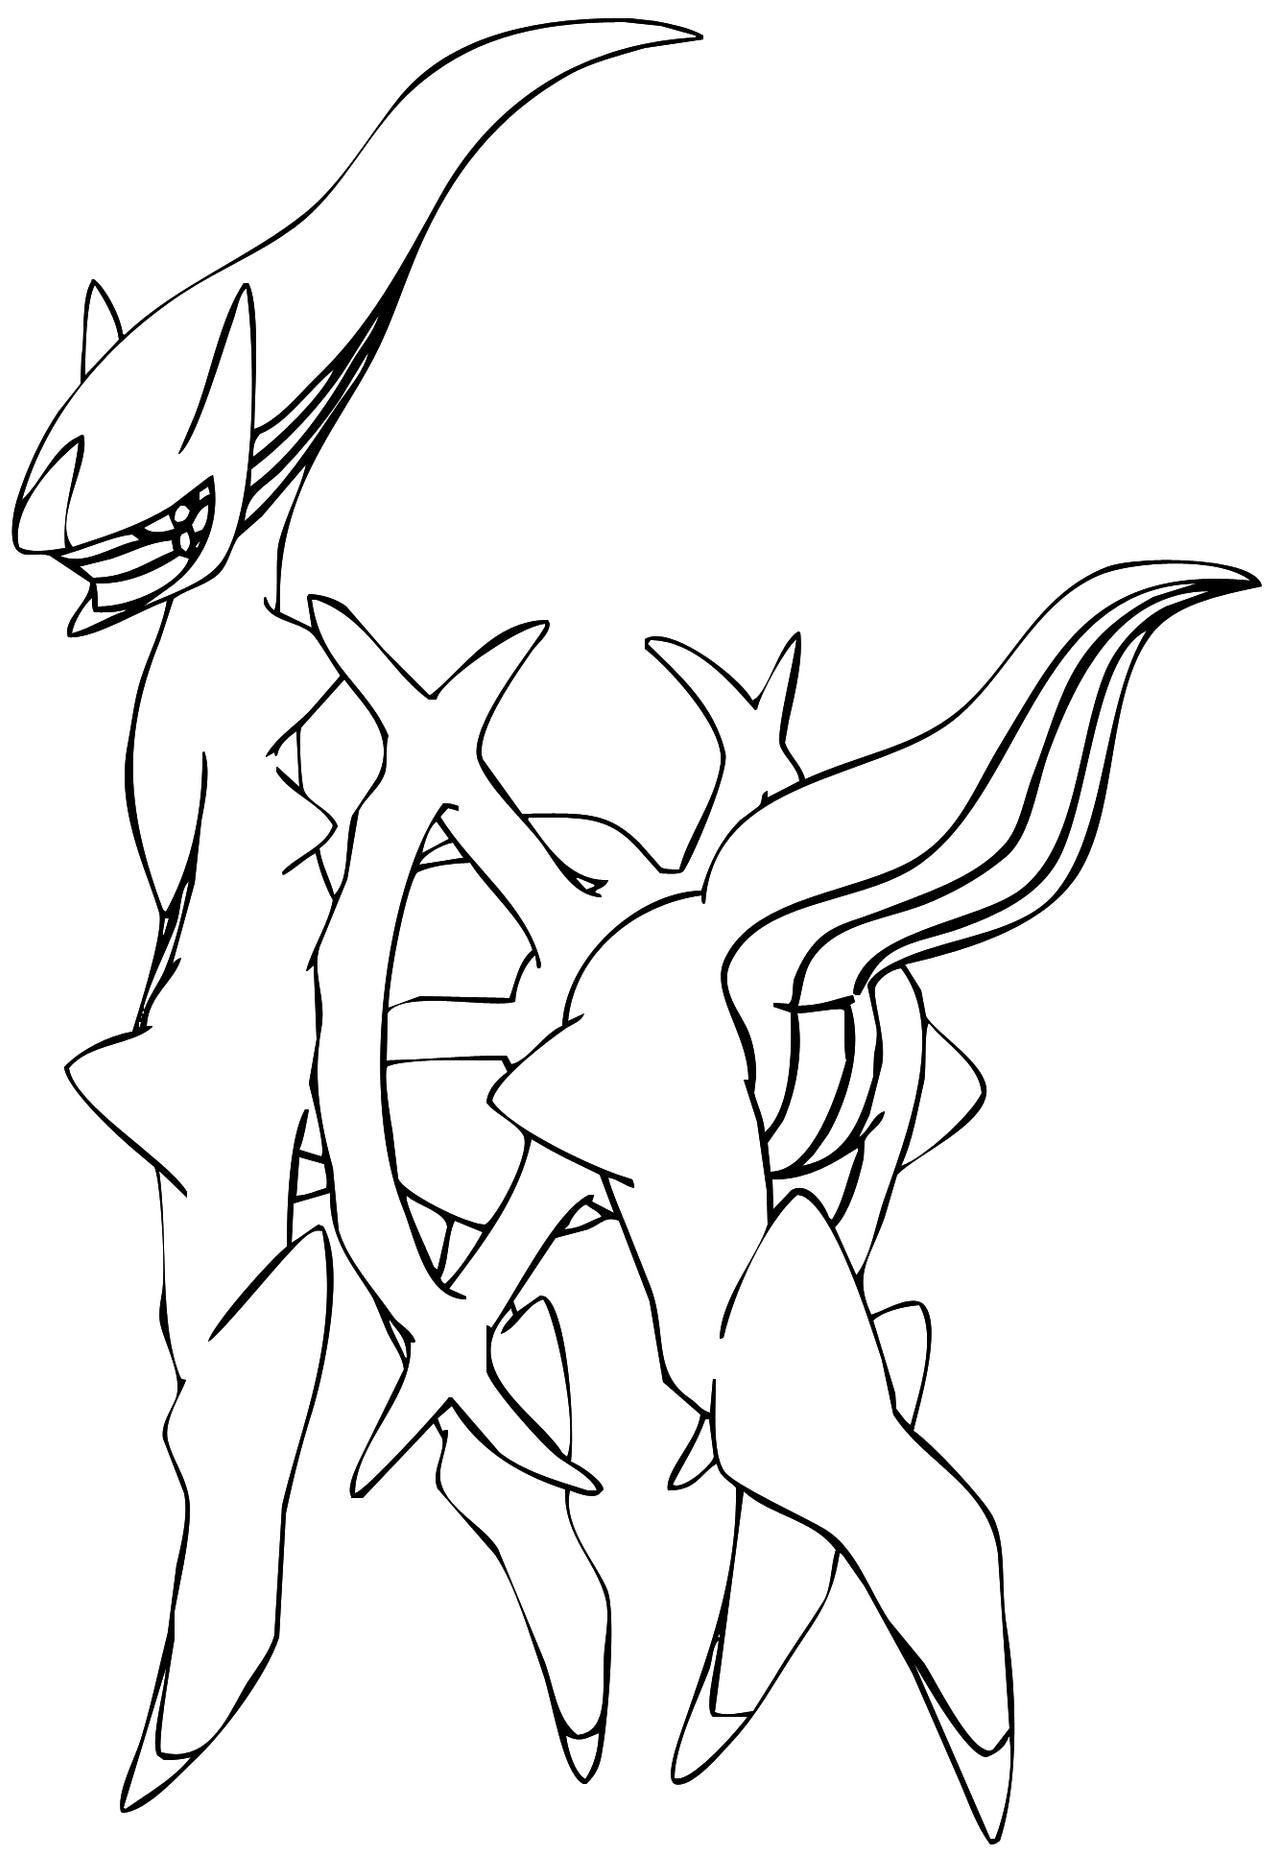 Pokemon Ausmalbilder Legendäre Pokemon : Pokemon Coloring Pages Xerneas Best Ideas For Printable And